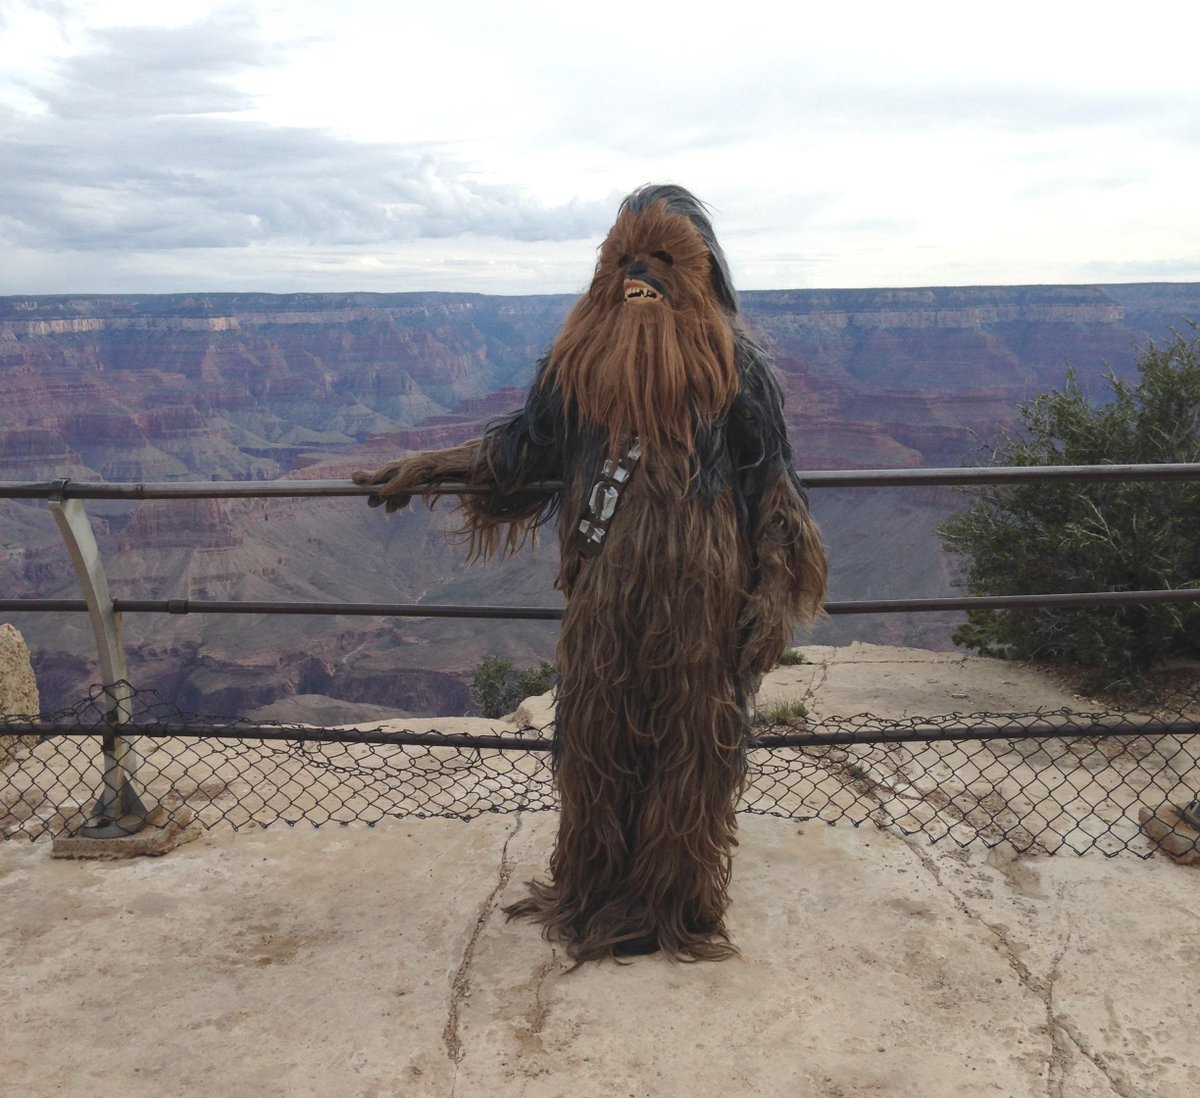 Dear Han, I'm at Grand Canyon Anakin see for miles and miles. Ha! Get it? #MayThe4thBeWithYou -ecd/if http://t.co/J2aPaTPfTf